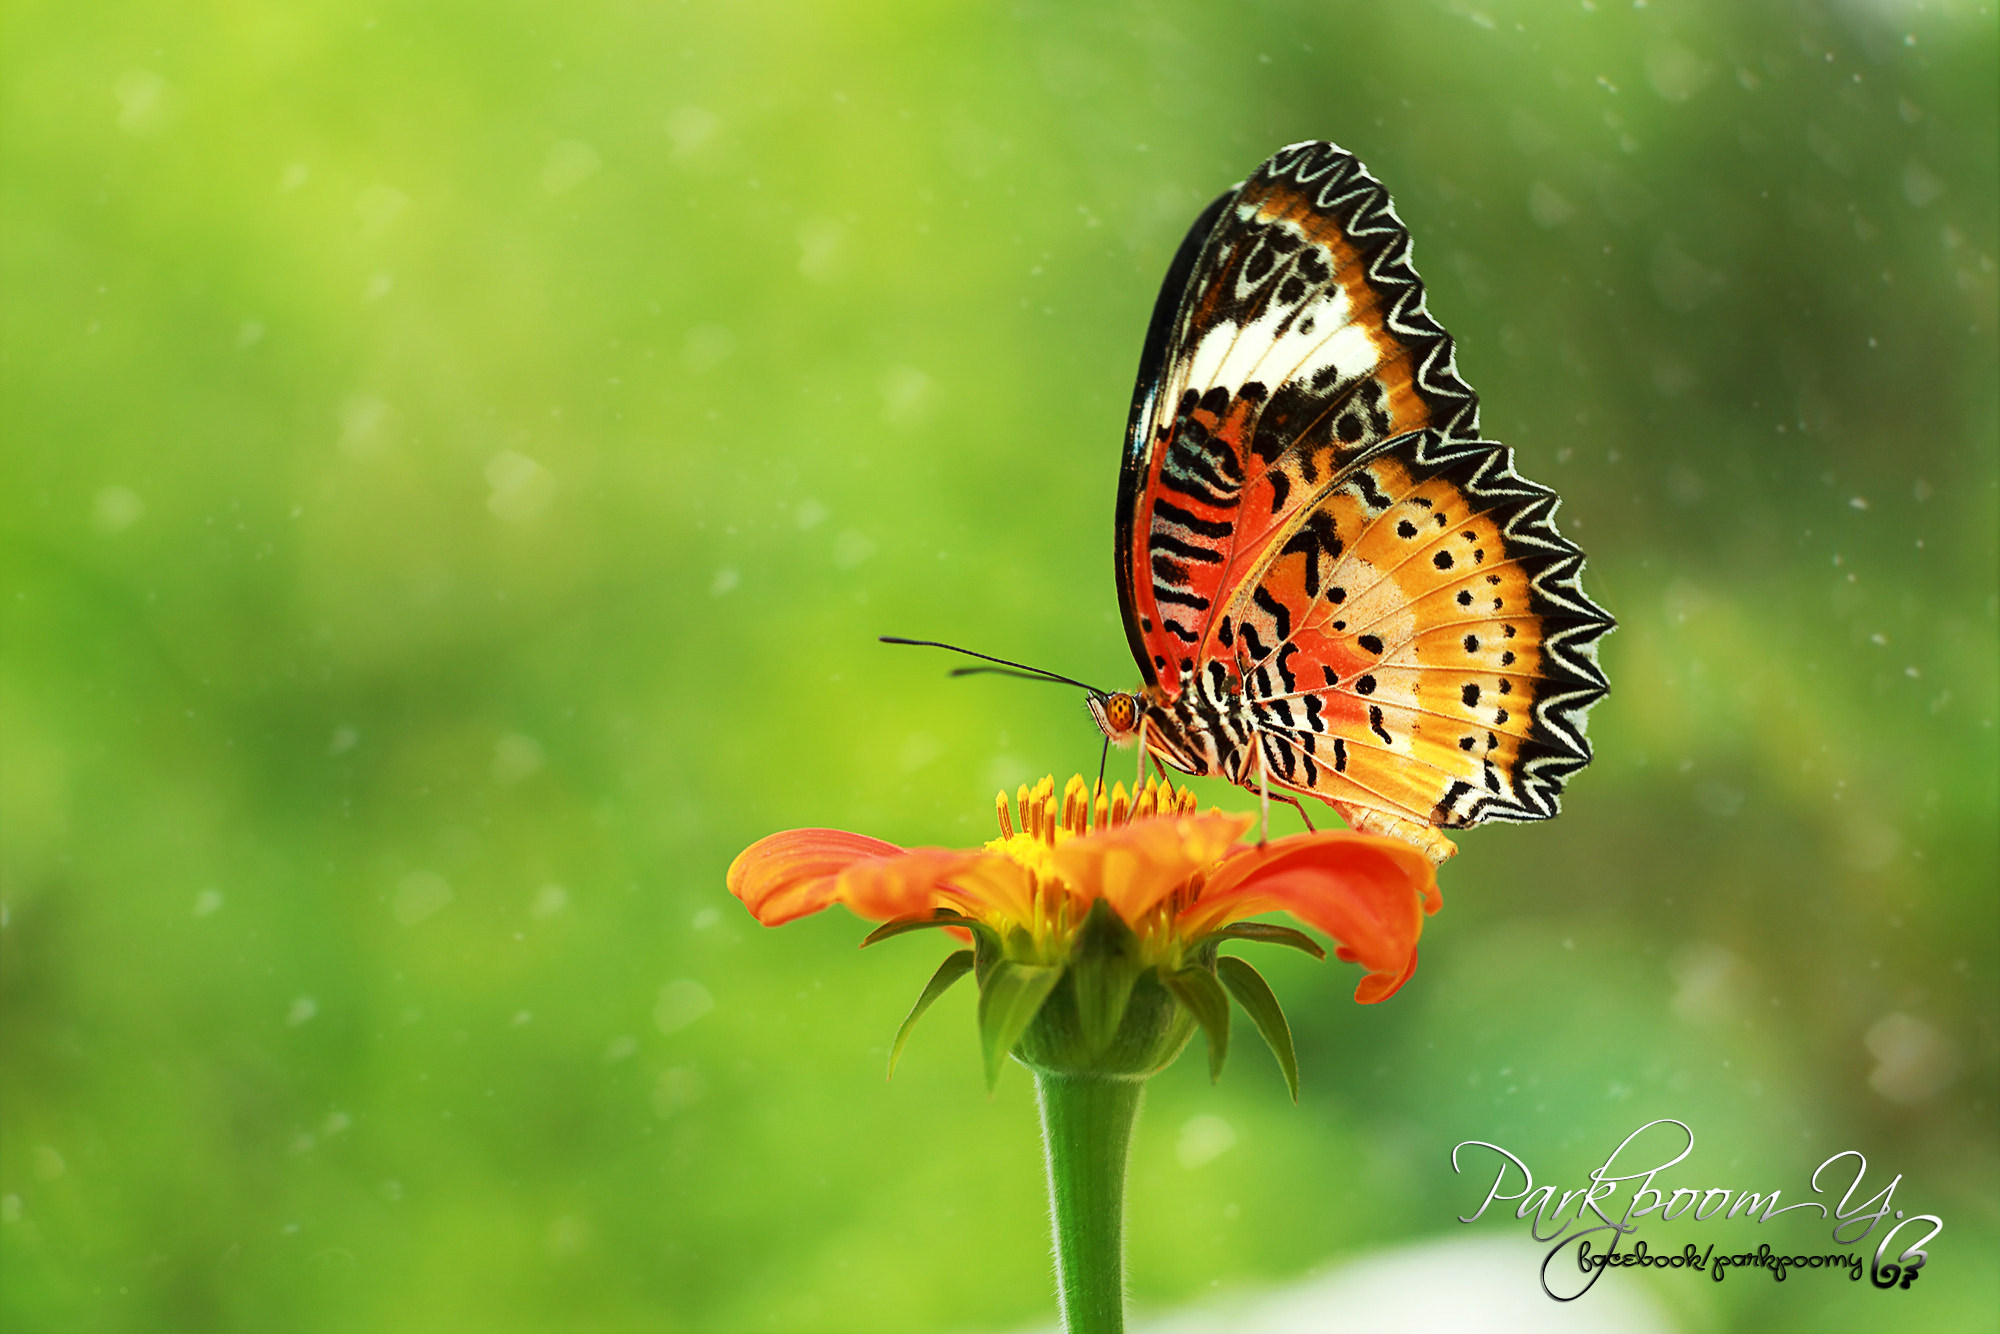 Photograph Butterfly heart by Pärkpòóm Ÿeesòóntes on 500px